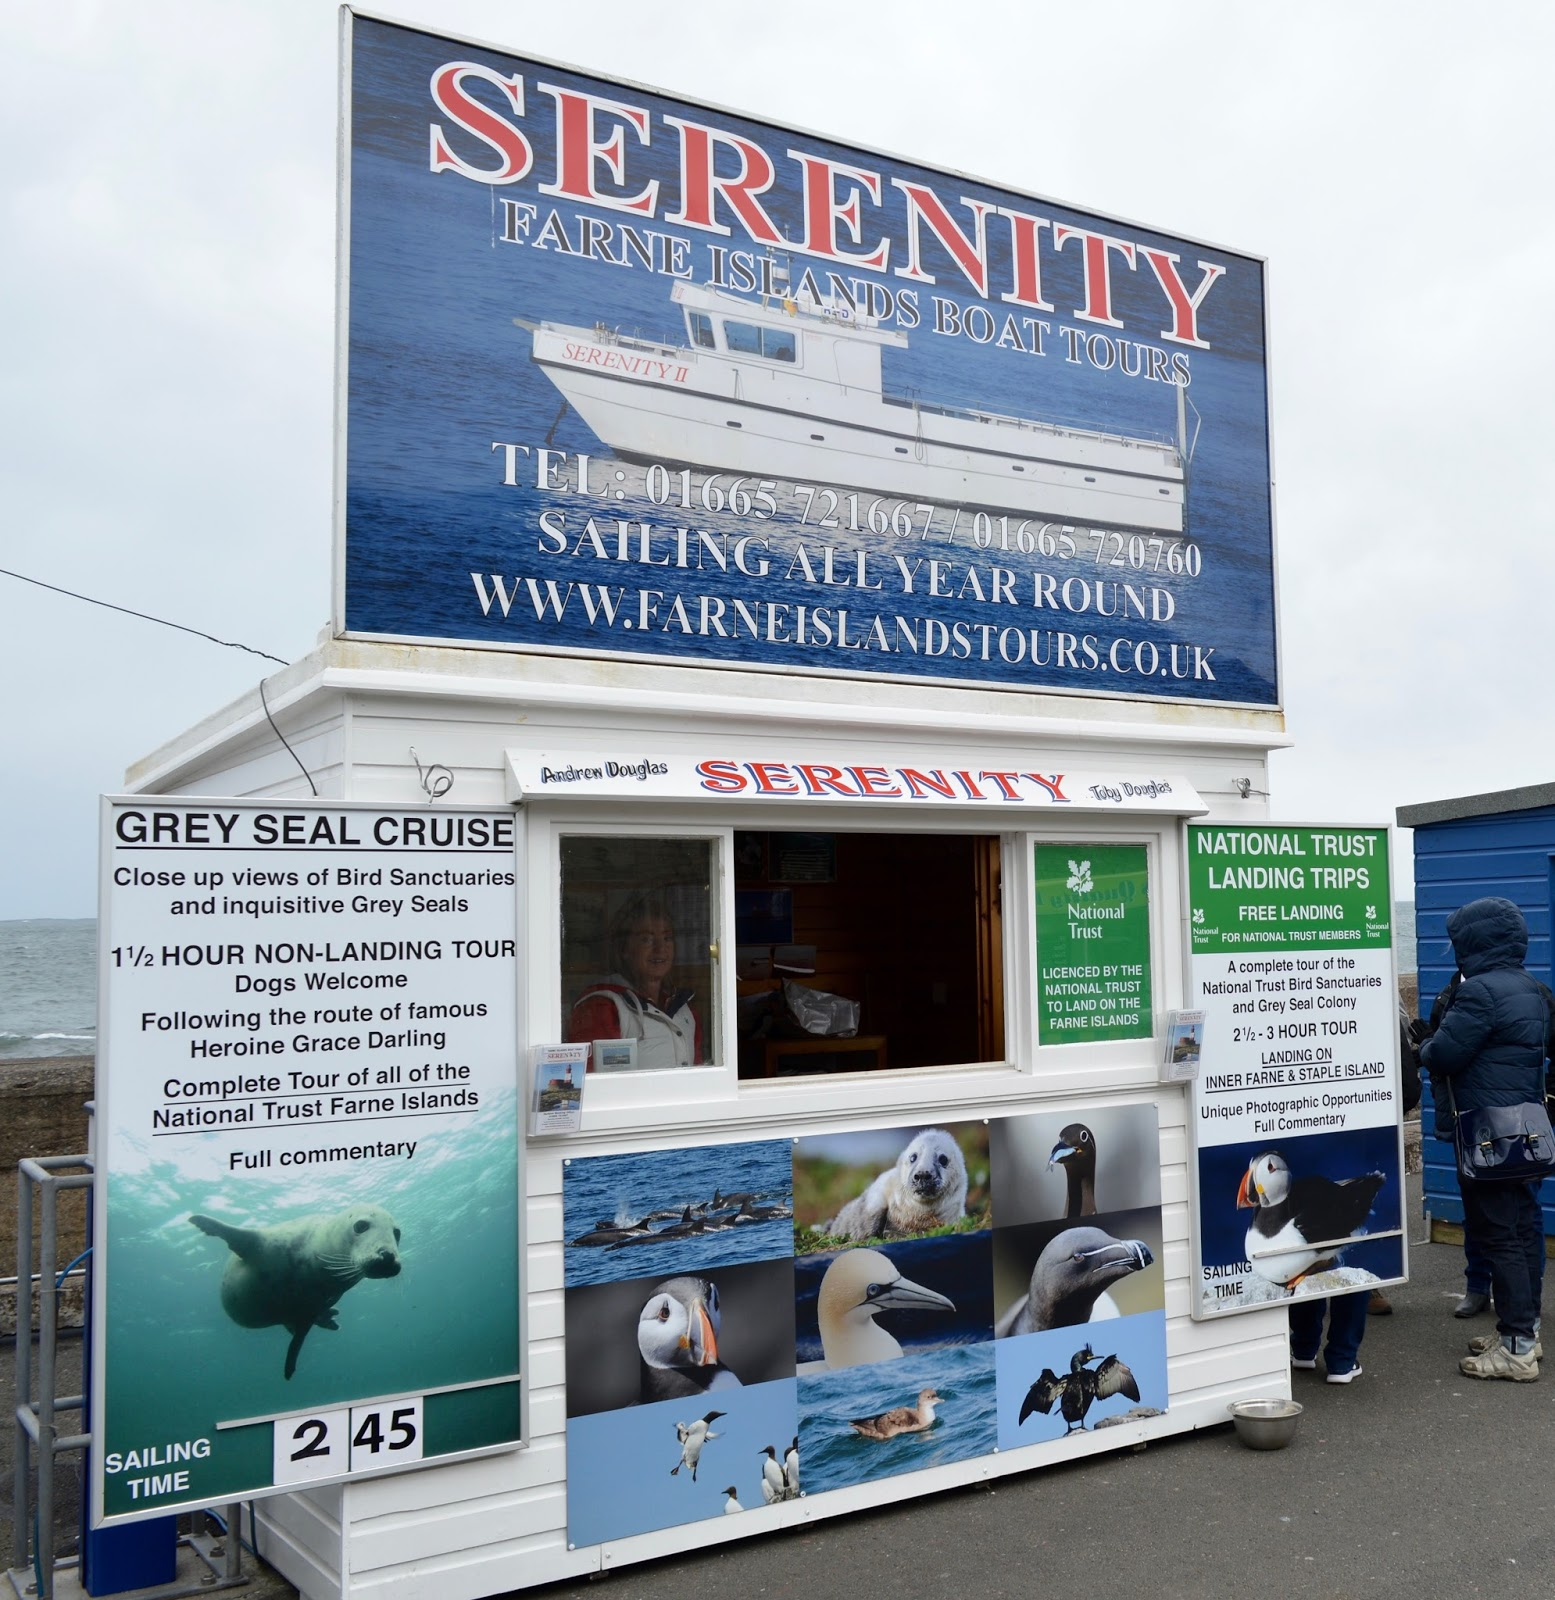 Farne Island Boat Trips with Serenity | A review and what to expect with kids - ticket office in Serenity Harbour